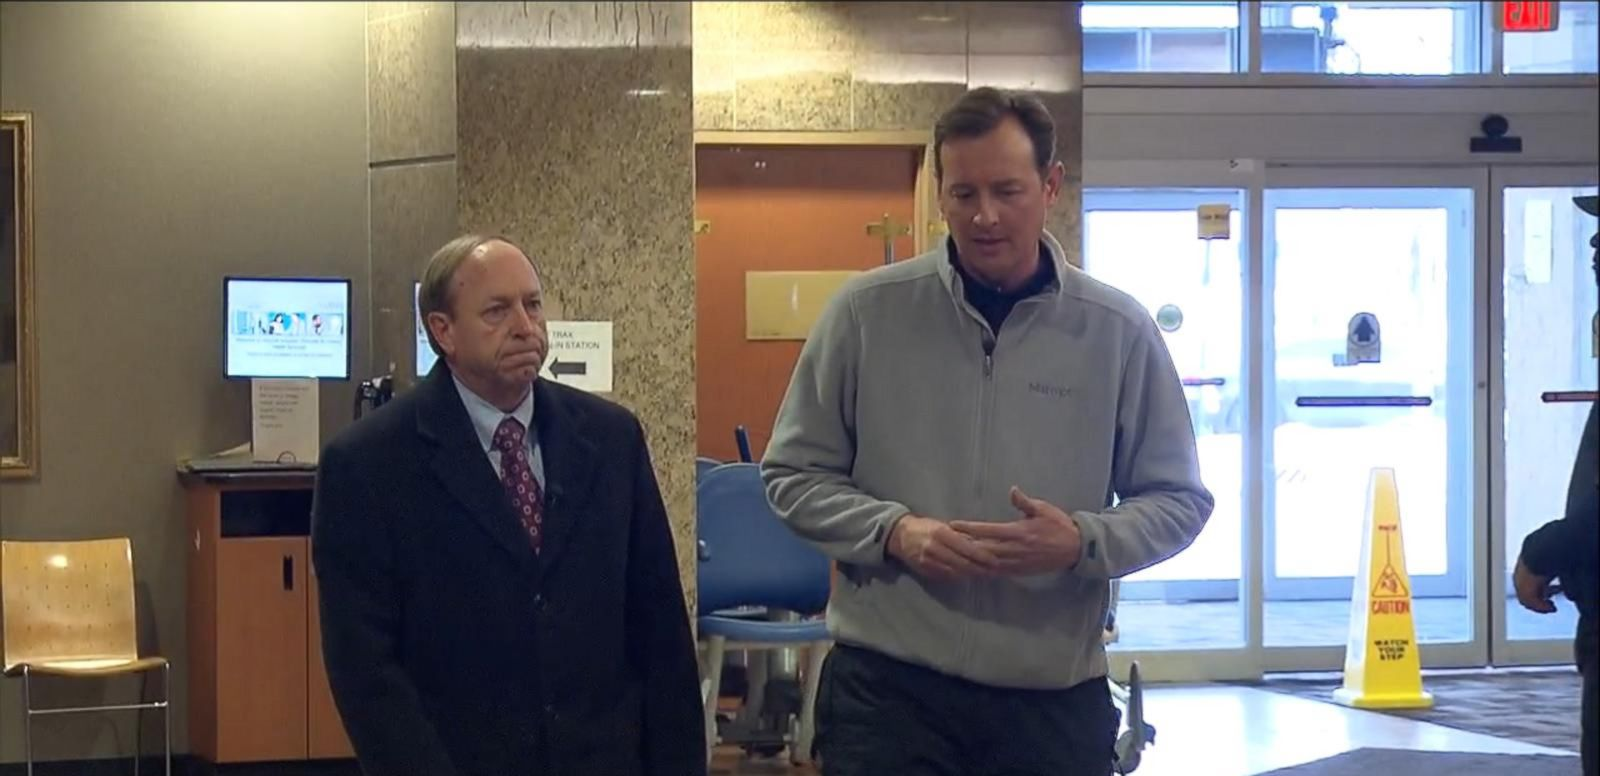 VIDEO: Colorado Springs Mayor Discusses Planned Parenthood Shooting